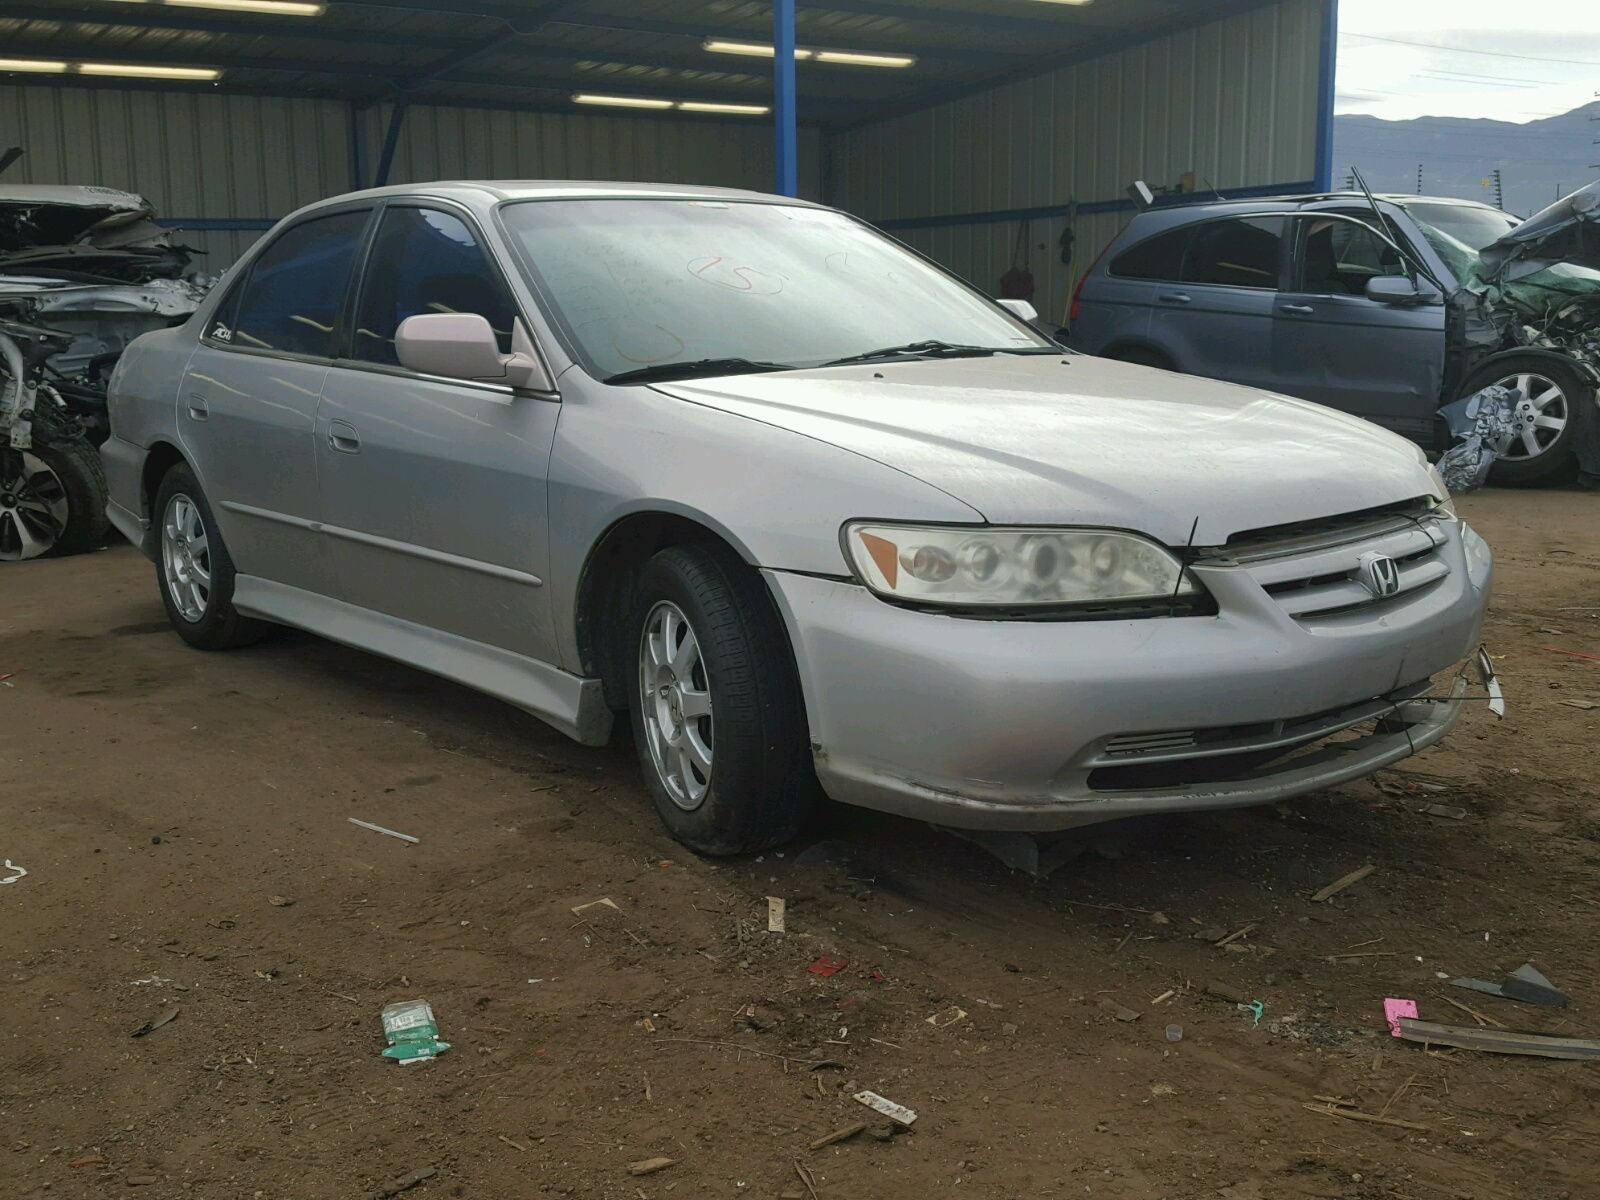 2002 Honda Accord Blue Book U003eu003e Auto Auction Ended On VIN: JHMBB62491C011566  2001 HONDA